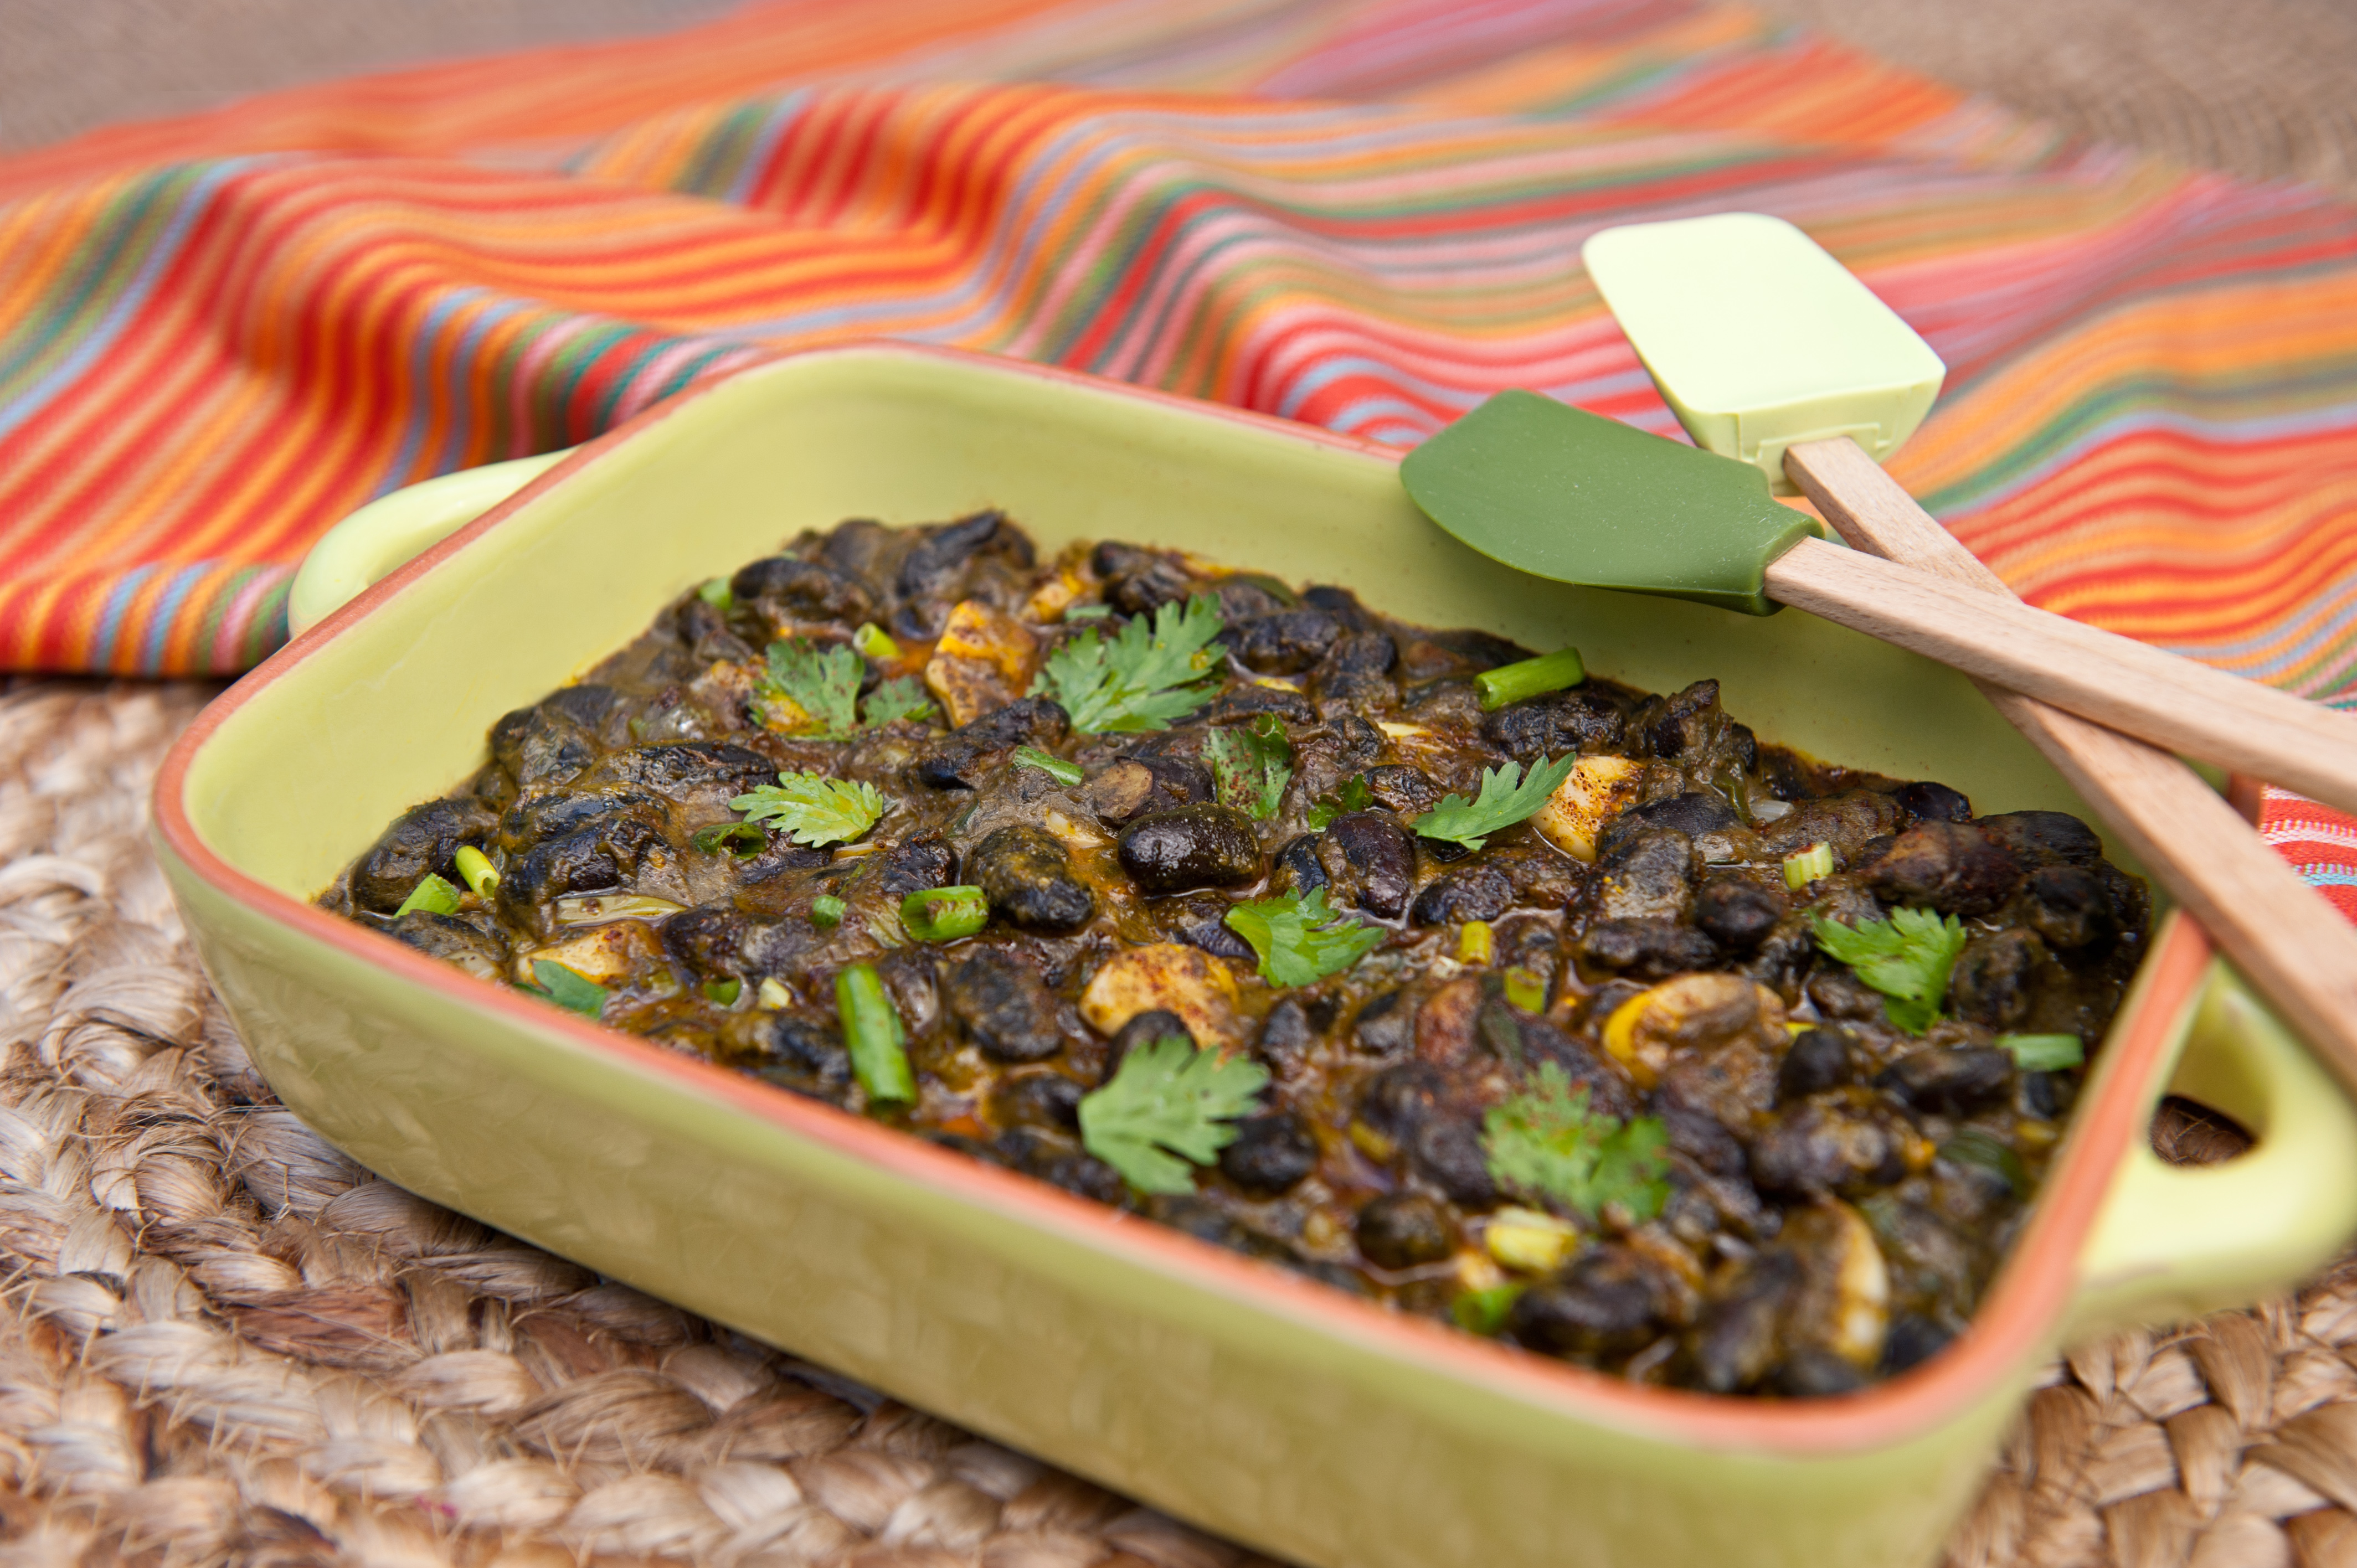 Organic, Vegan, Gluten-free, Jamaican Spicy Beans with a sweet coconut sauce